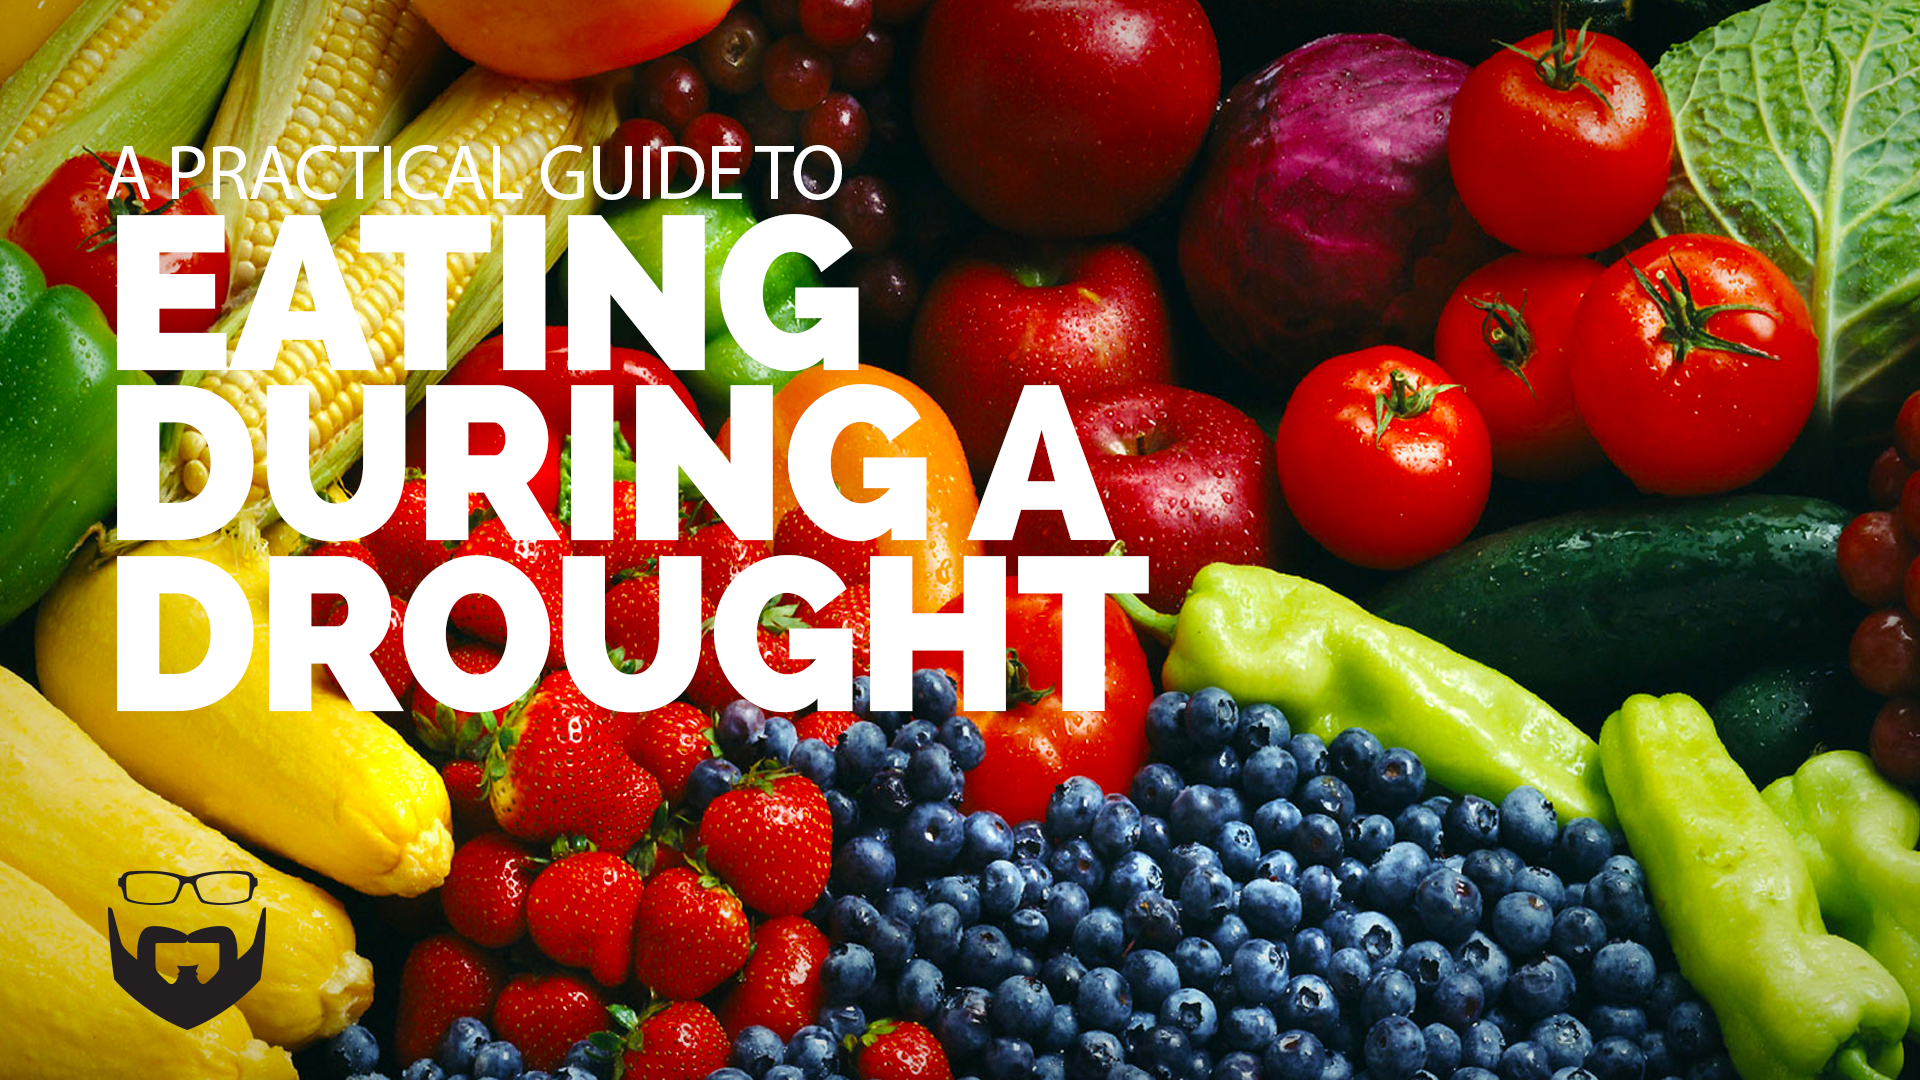 A Practical Guide to Eating During a Drought